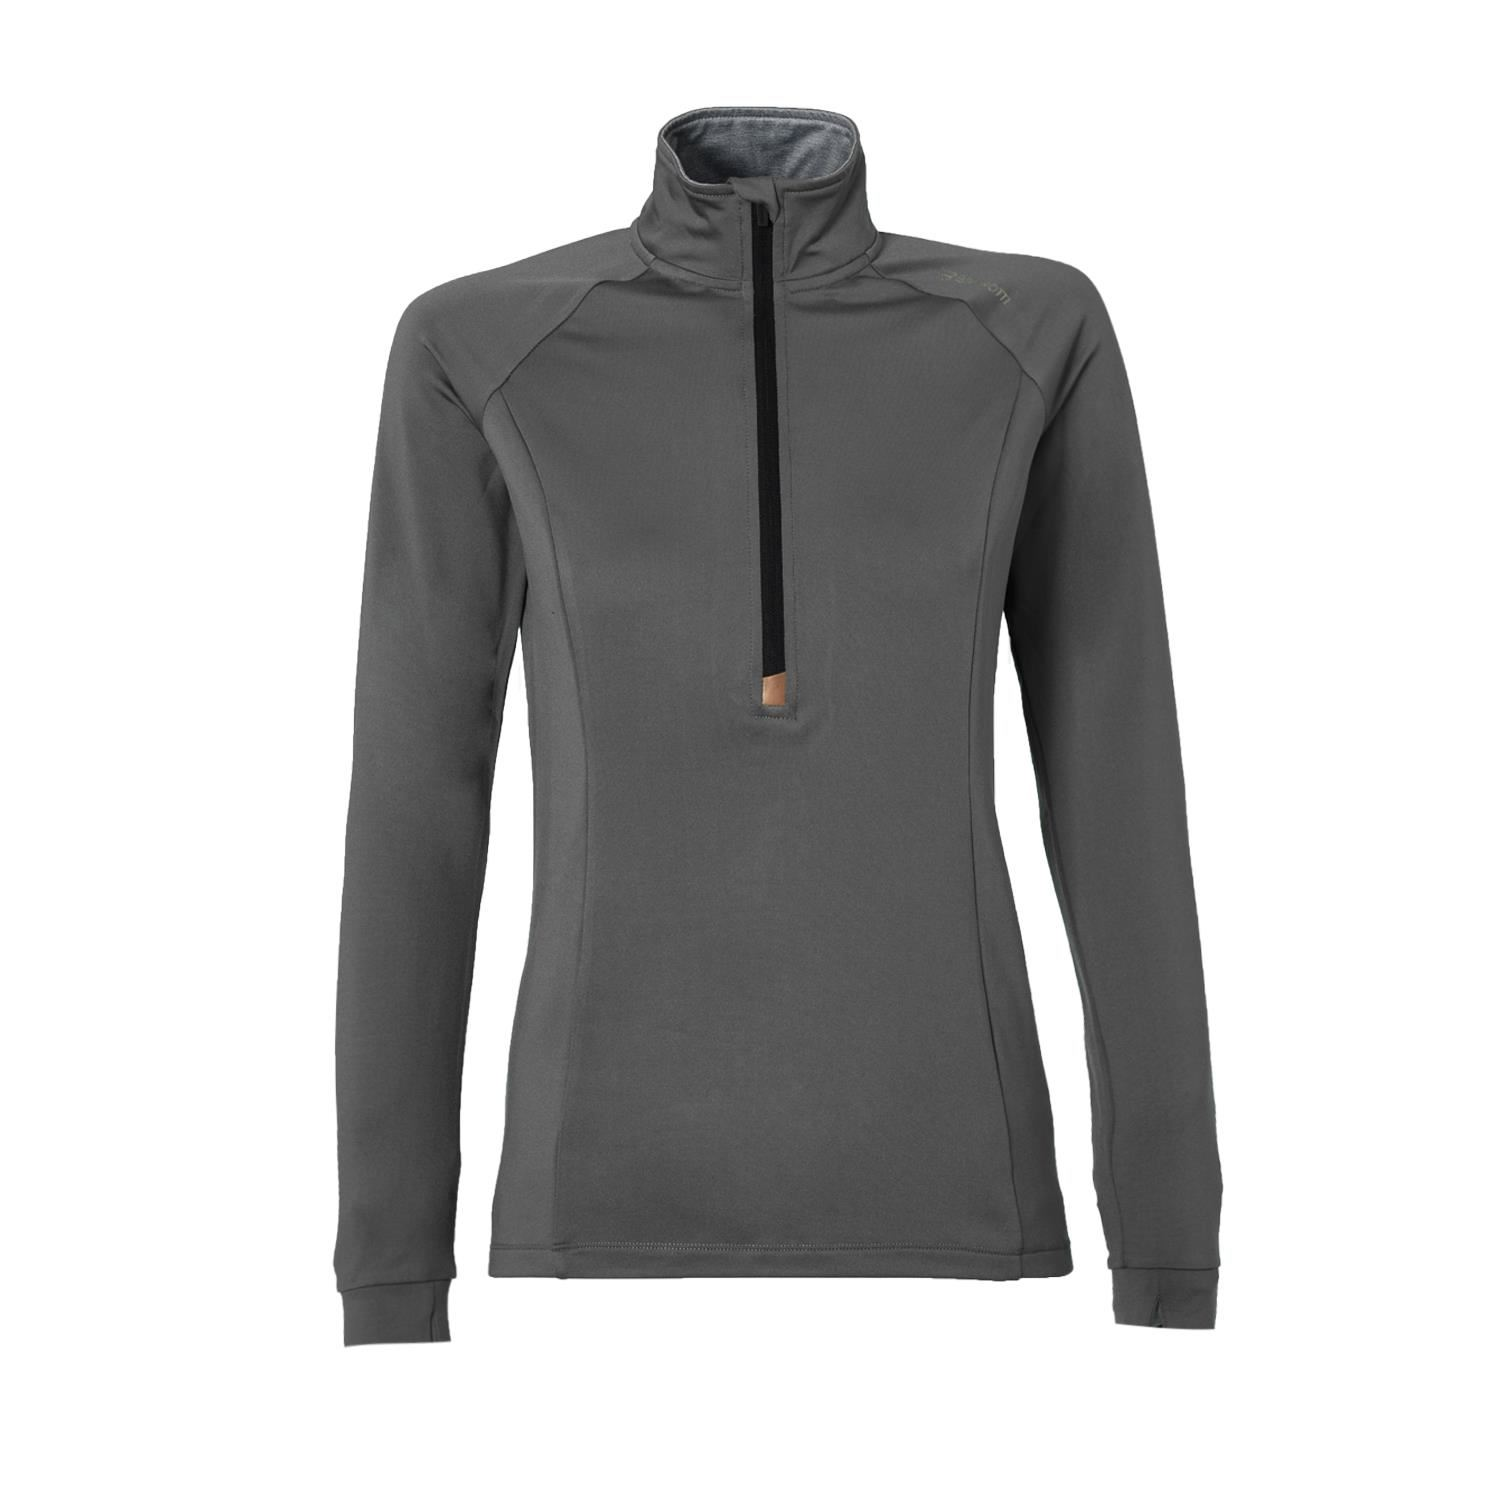 on sale a7b7c b3a59 Yrenna melange Women Fleece